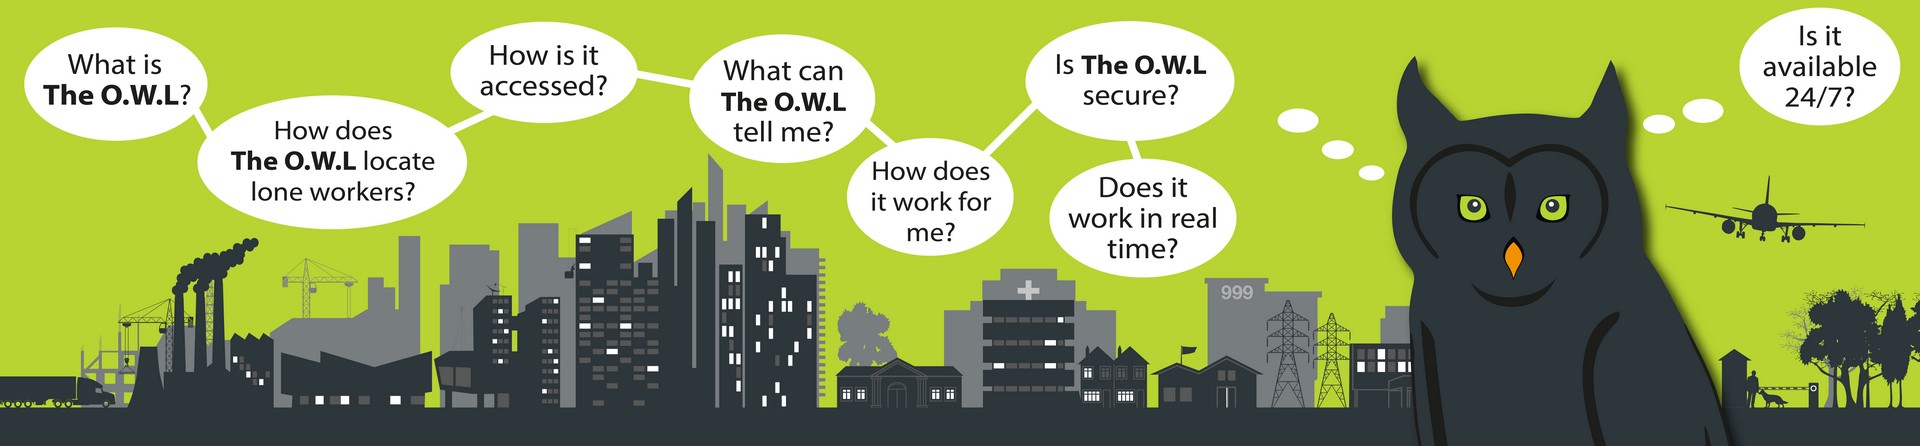 The O.W.L is your eyes and ears, allowing you to oversee lone workers, wherever they are. The O.W.L helps you supervise, manage and respond to lone workers.